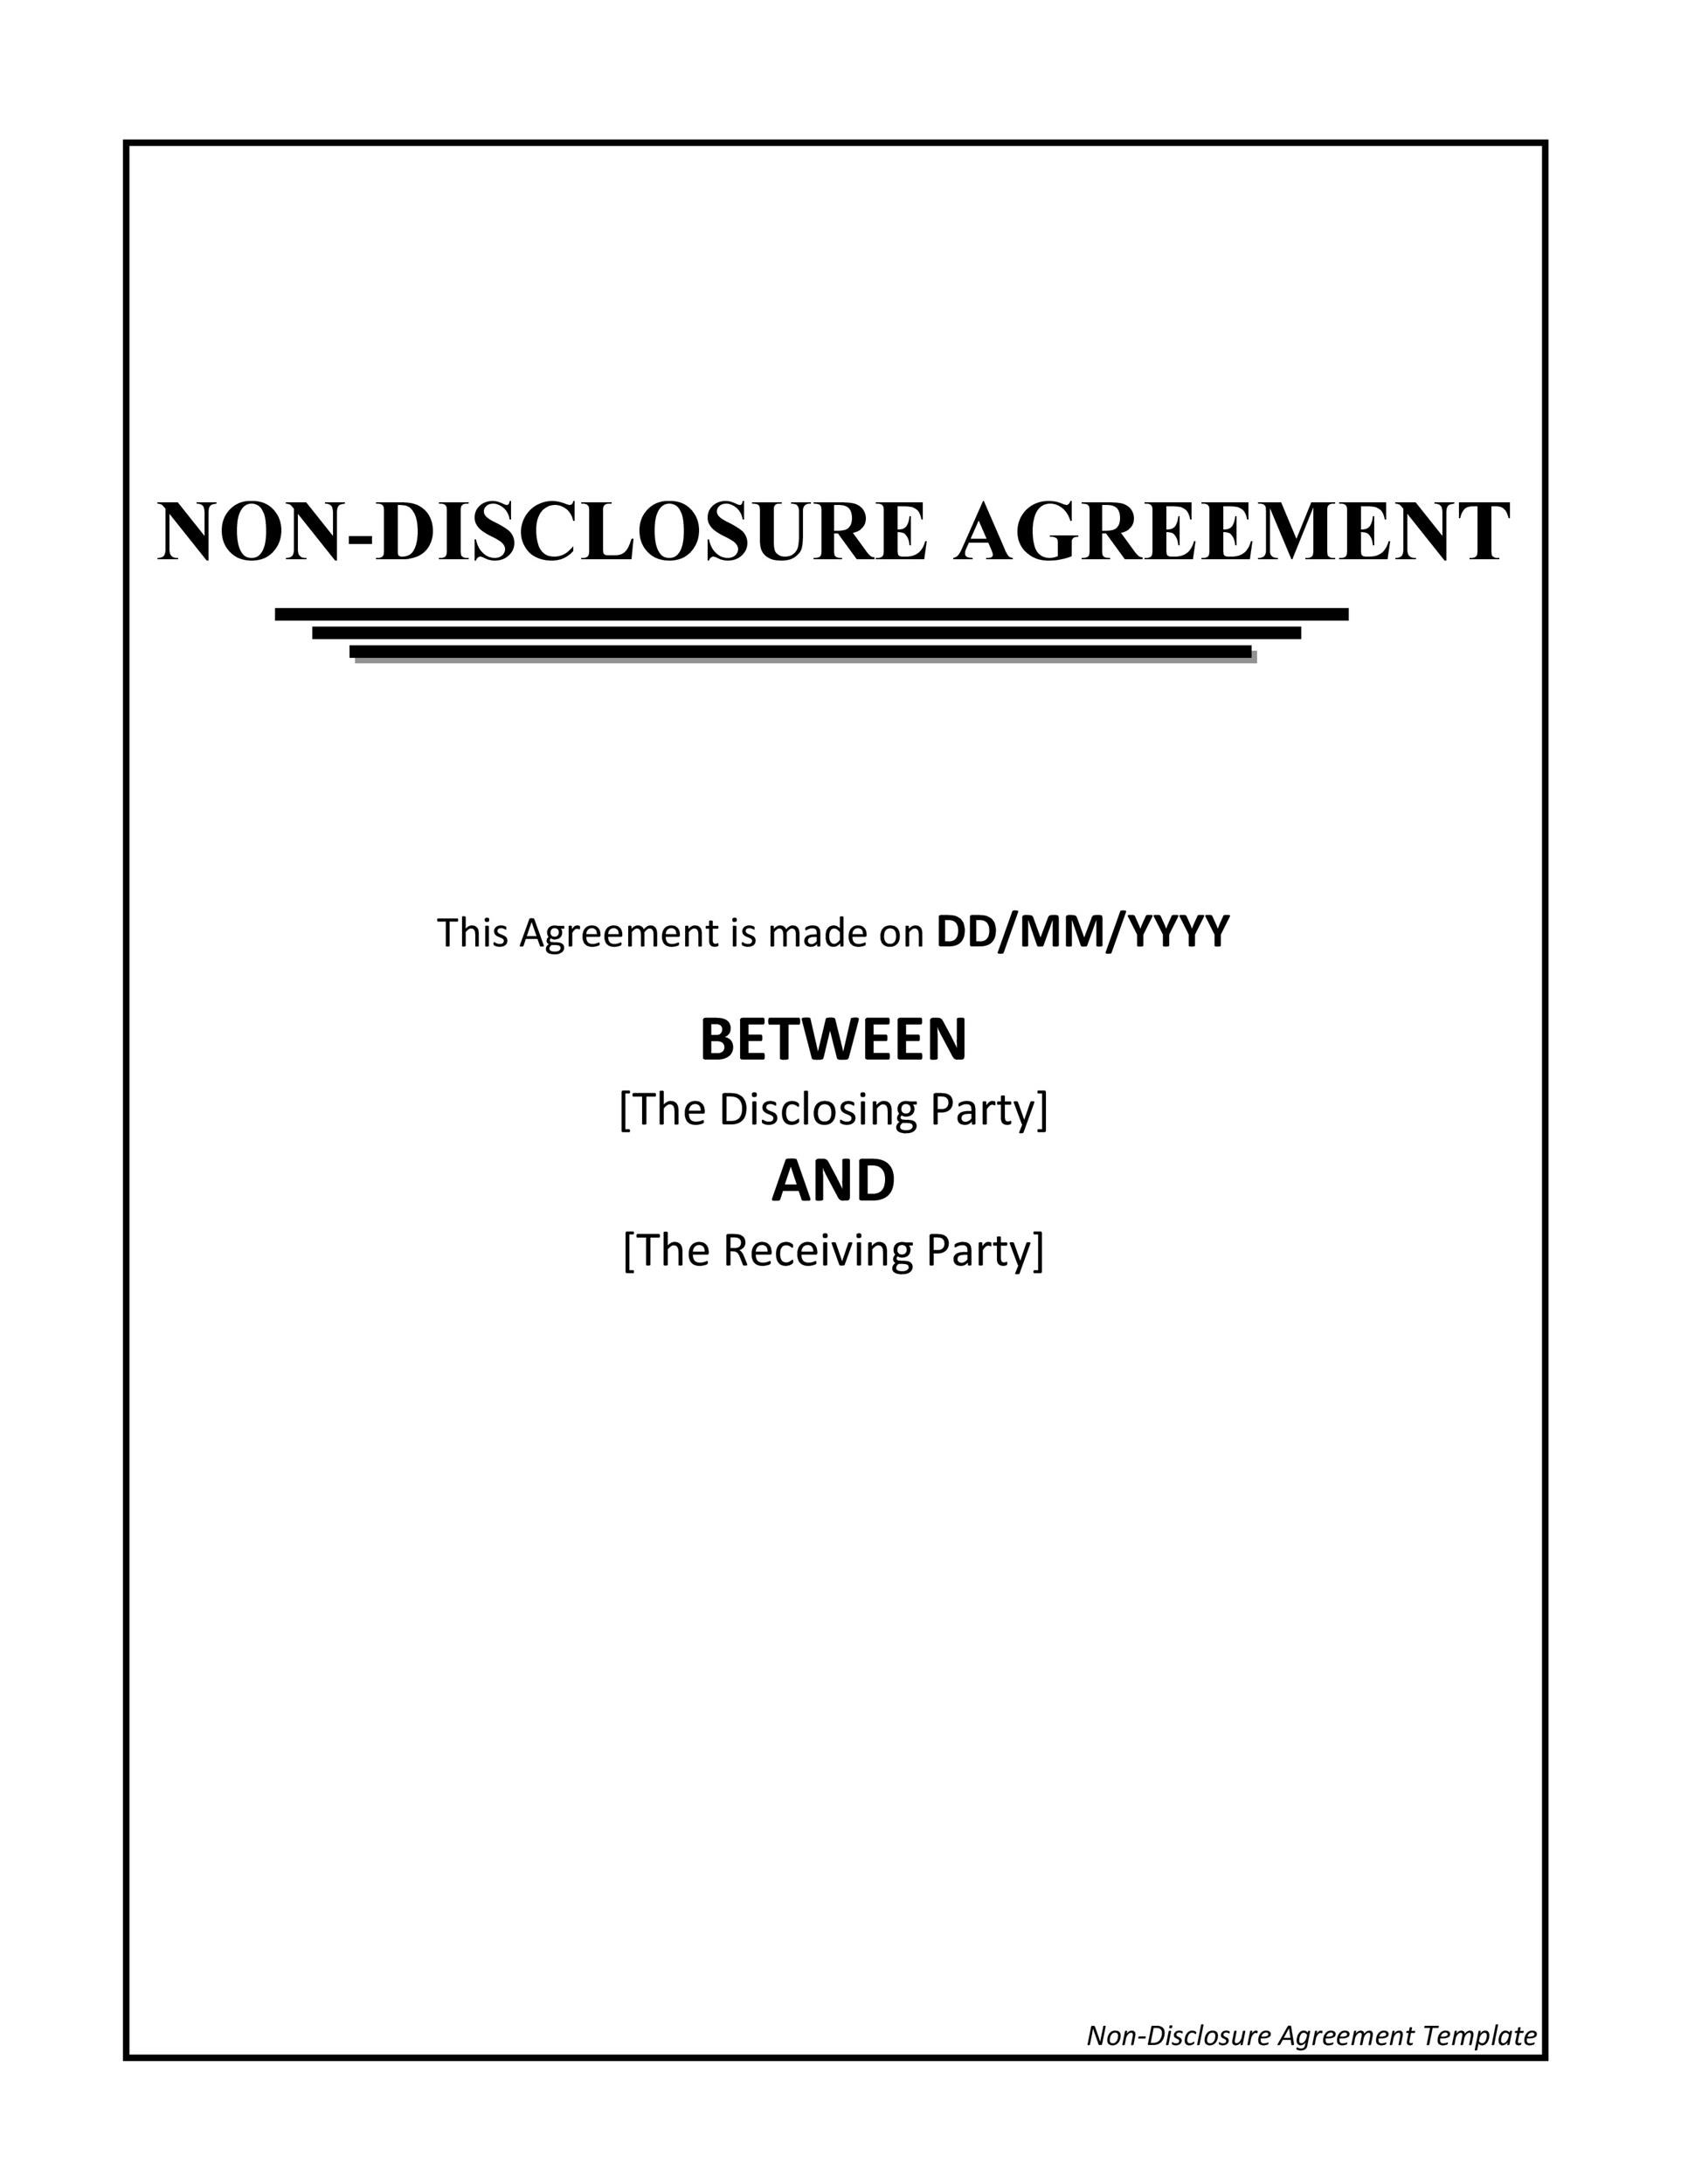 Free Non Disclosure Agreement Template 10